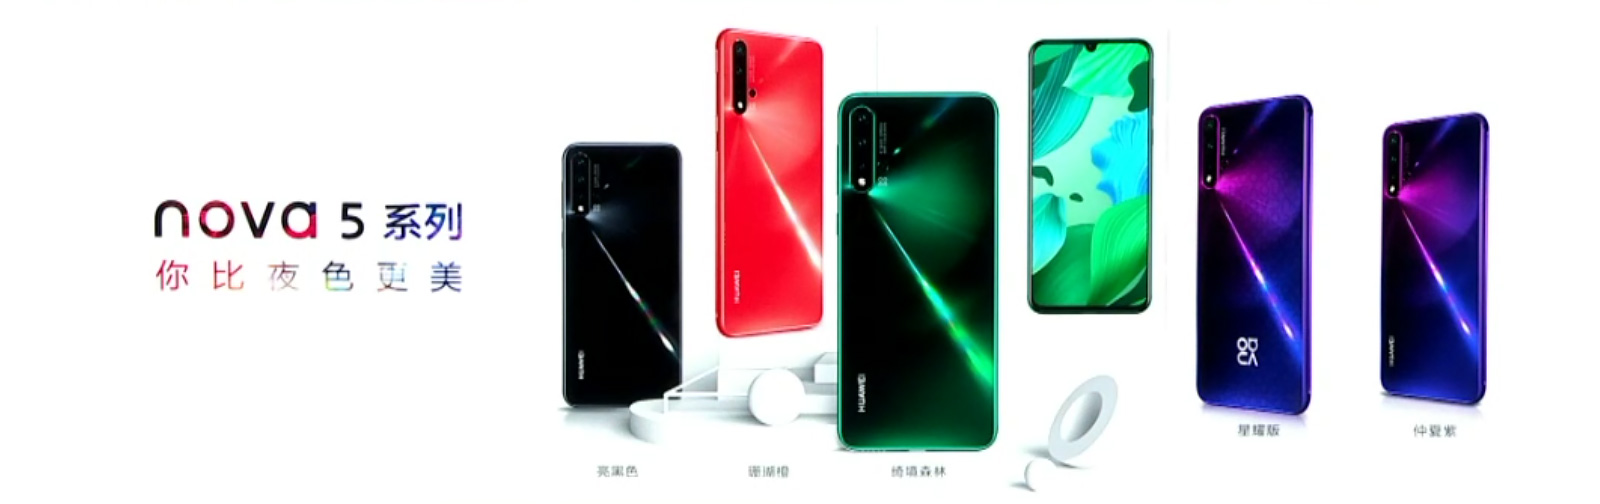 Prices and availability of the Huawei nova 5 series and the M6 tablet series